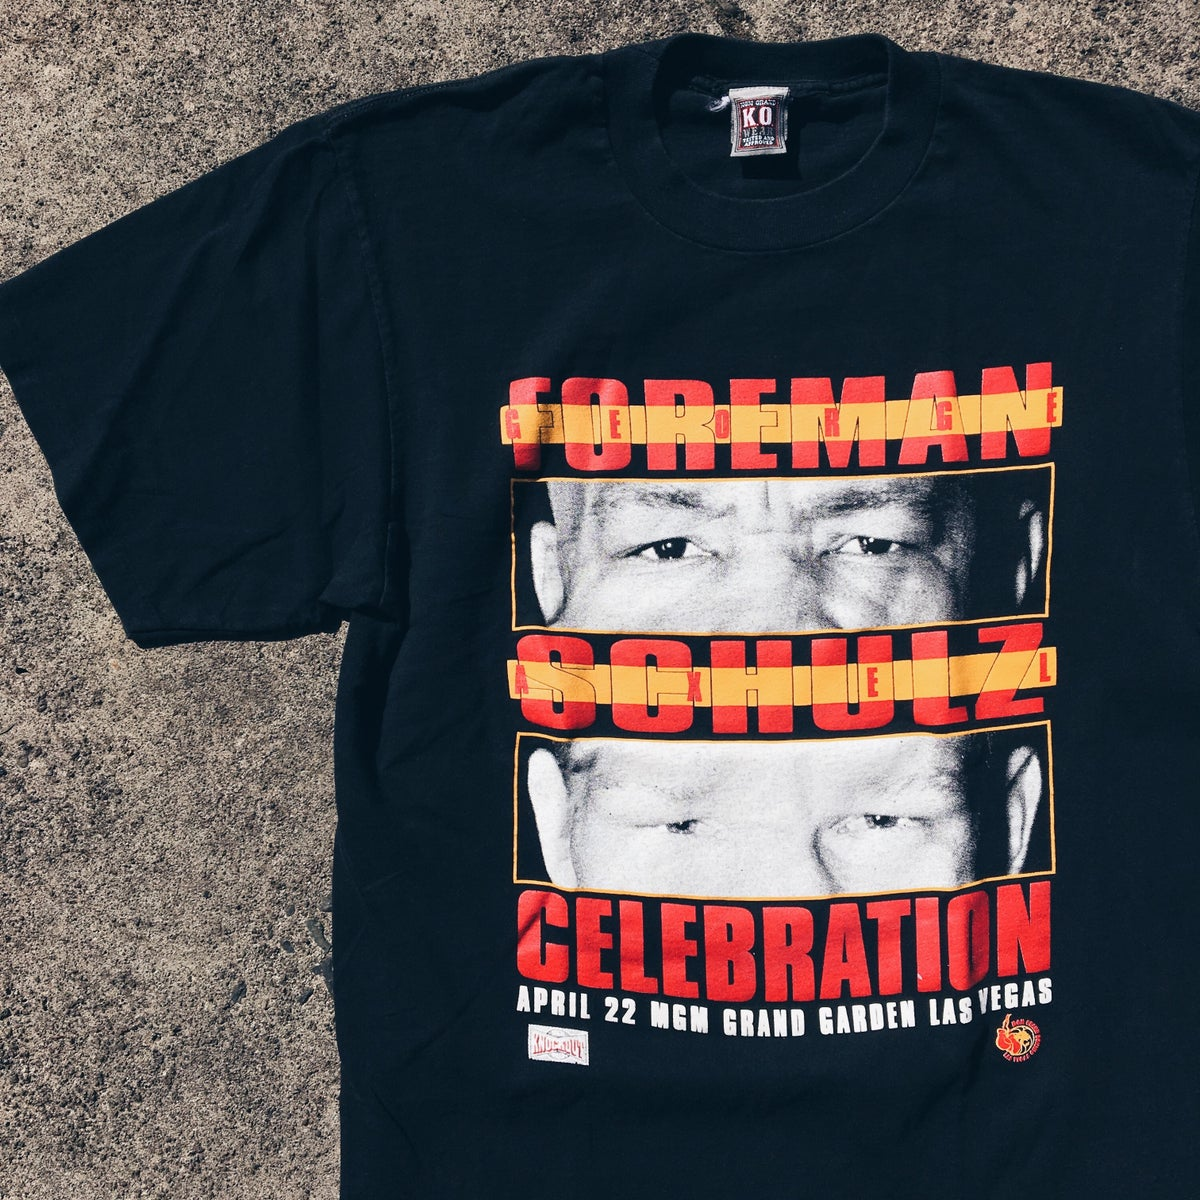 Image of Original 1995 George Foreman Boxing Tee.